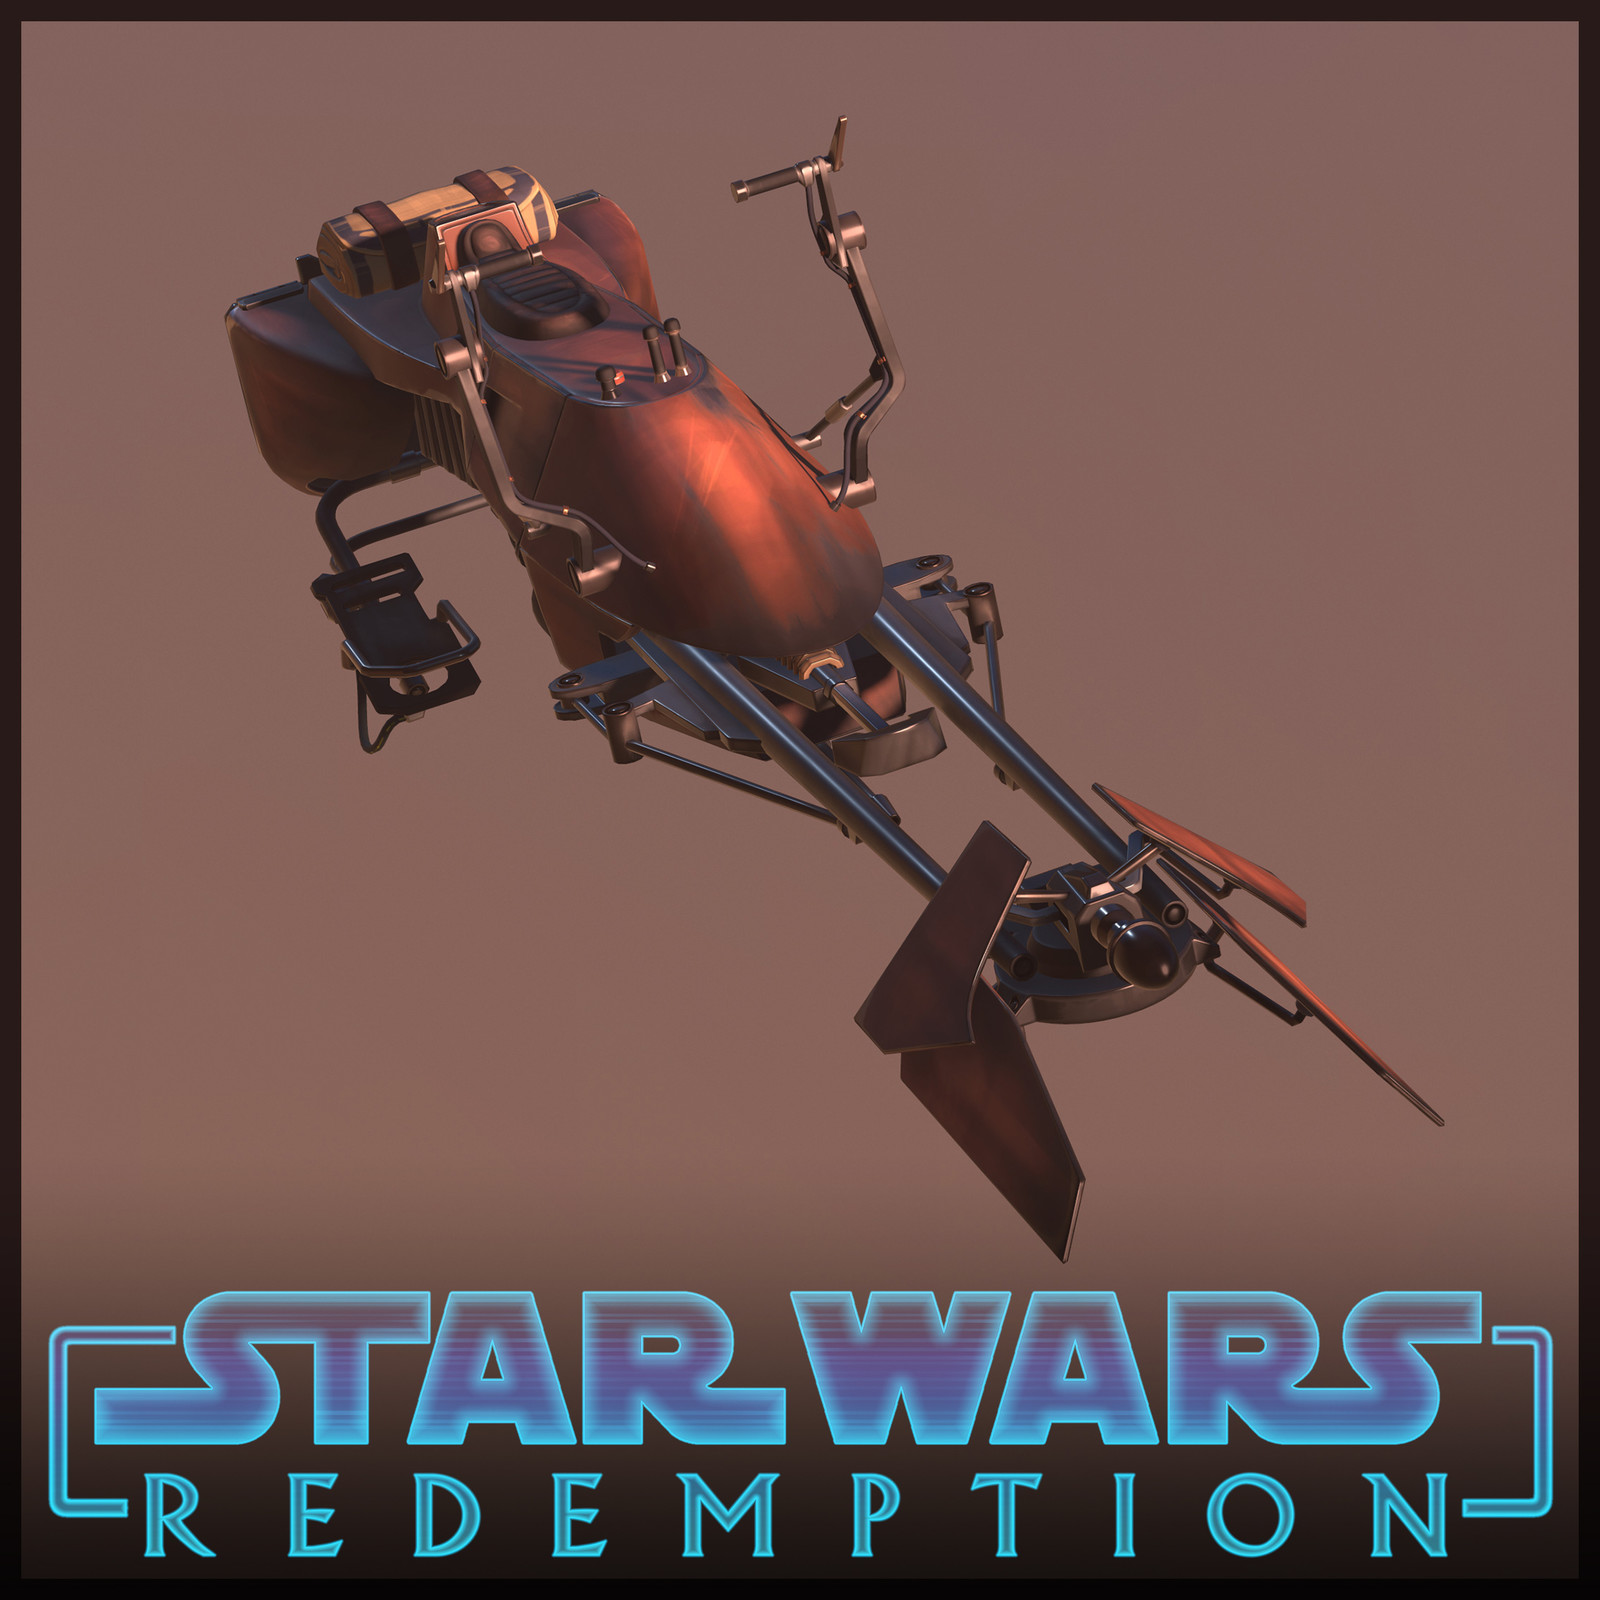 Star Wars - Redemption | SpeederBike 74-Z